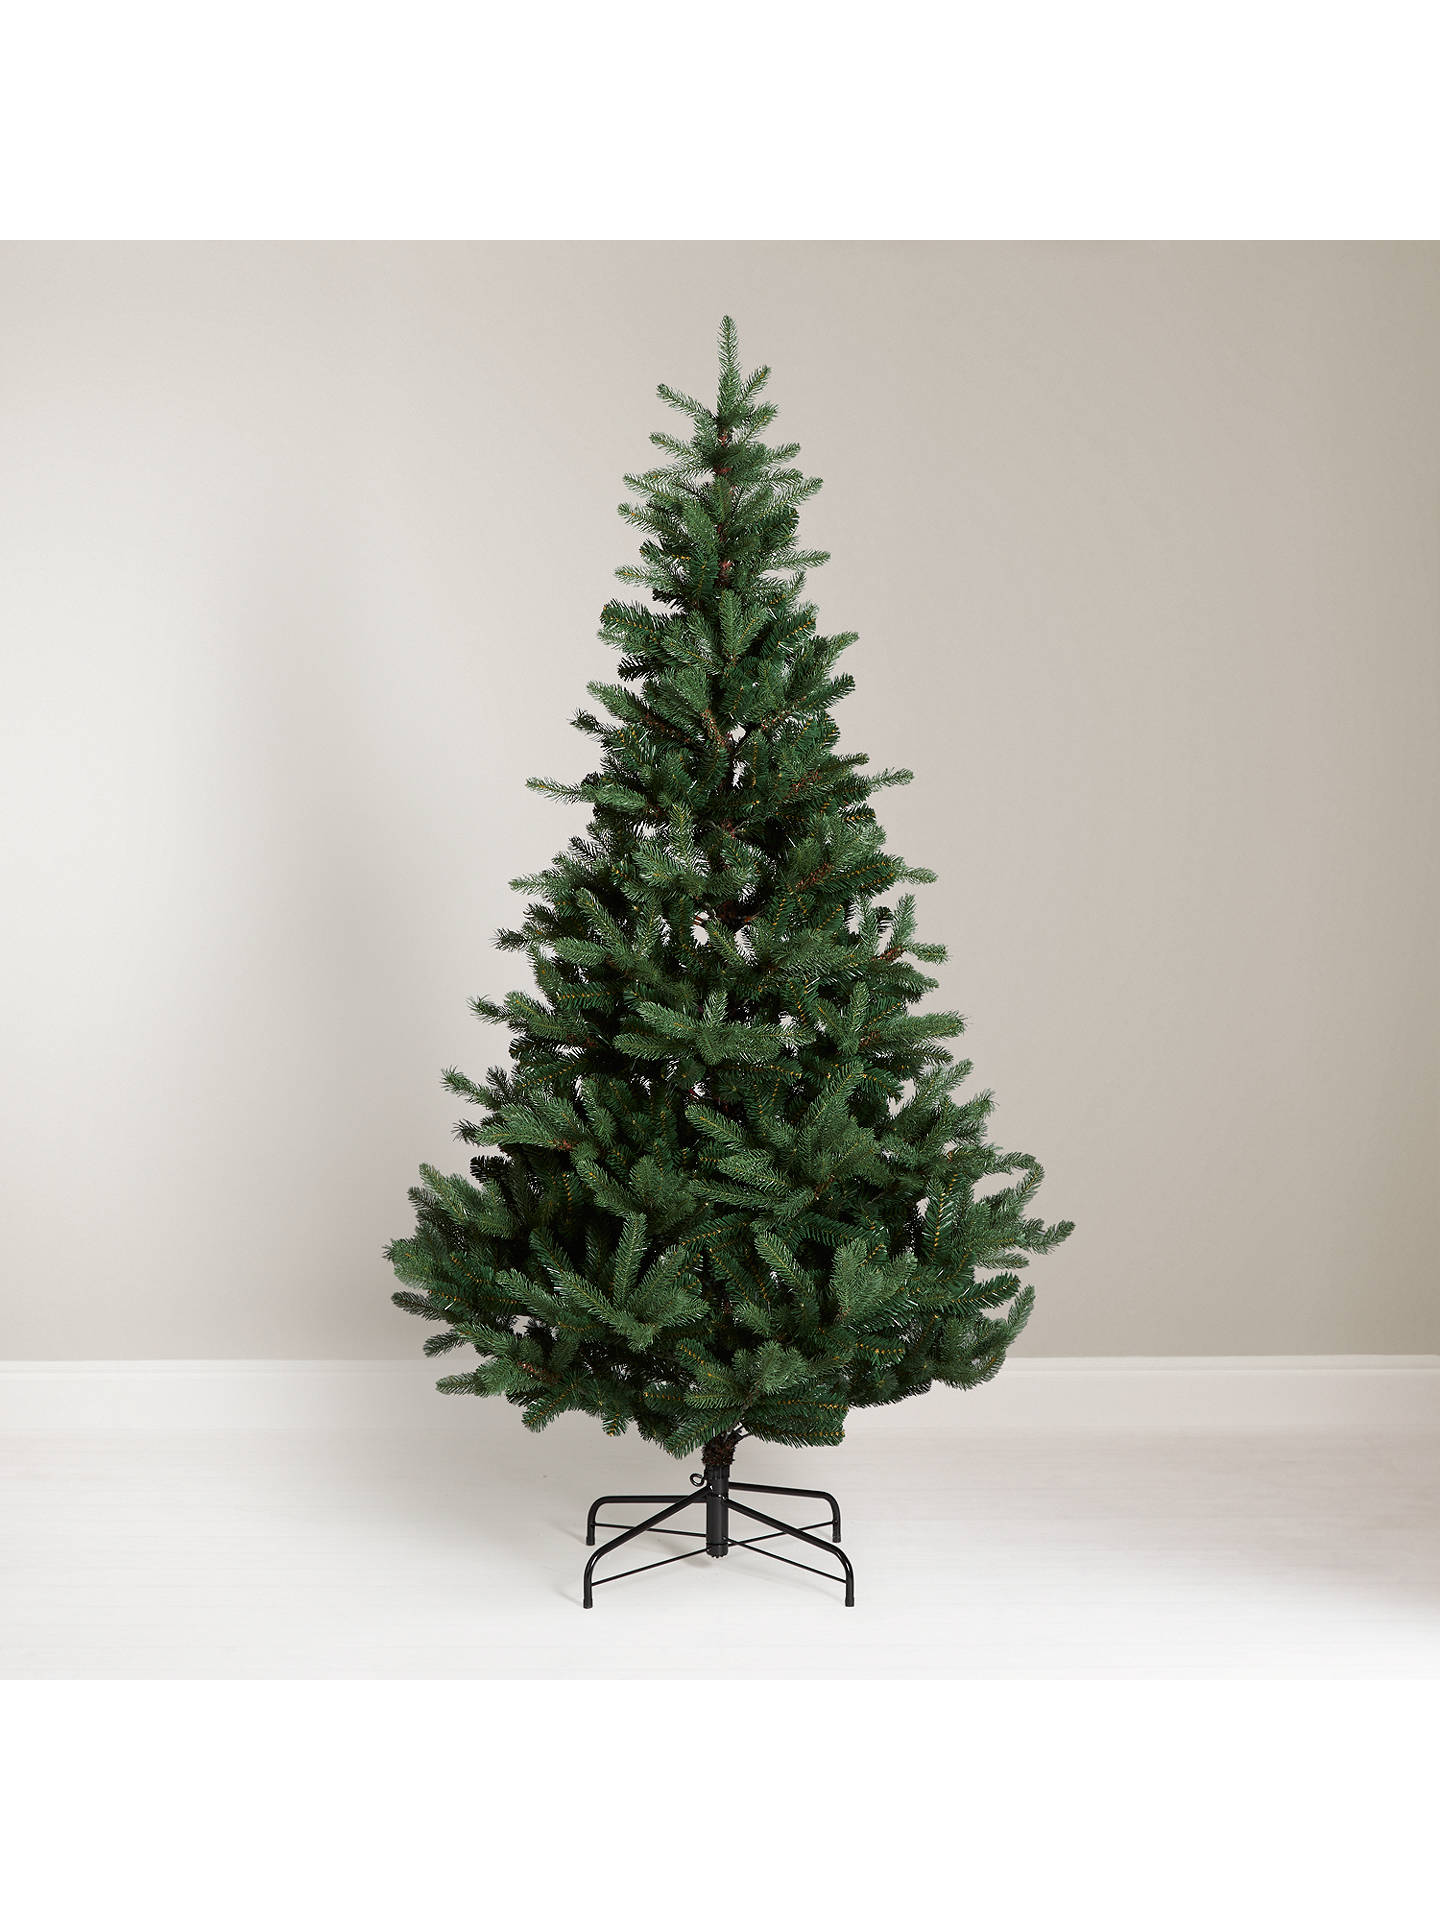 low priced d7a12 be0f9 John Lewis & Partners Fraser Fir Unlit Christmas Tree, 7ft